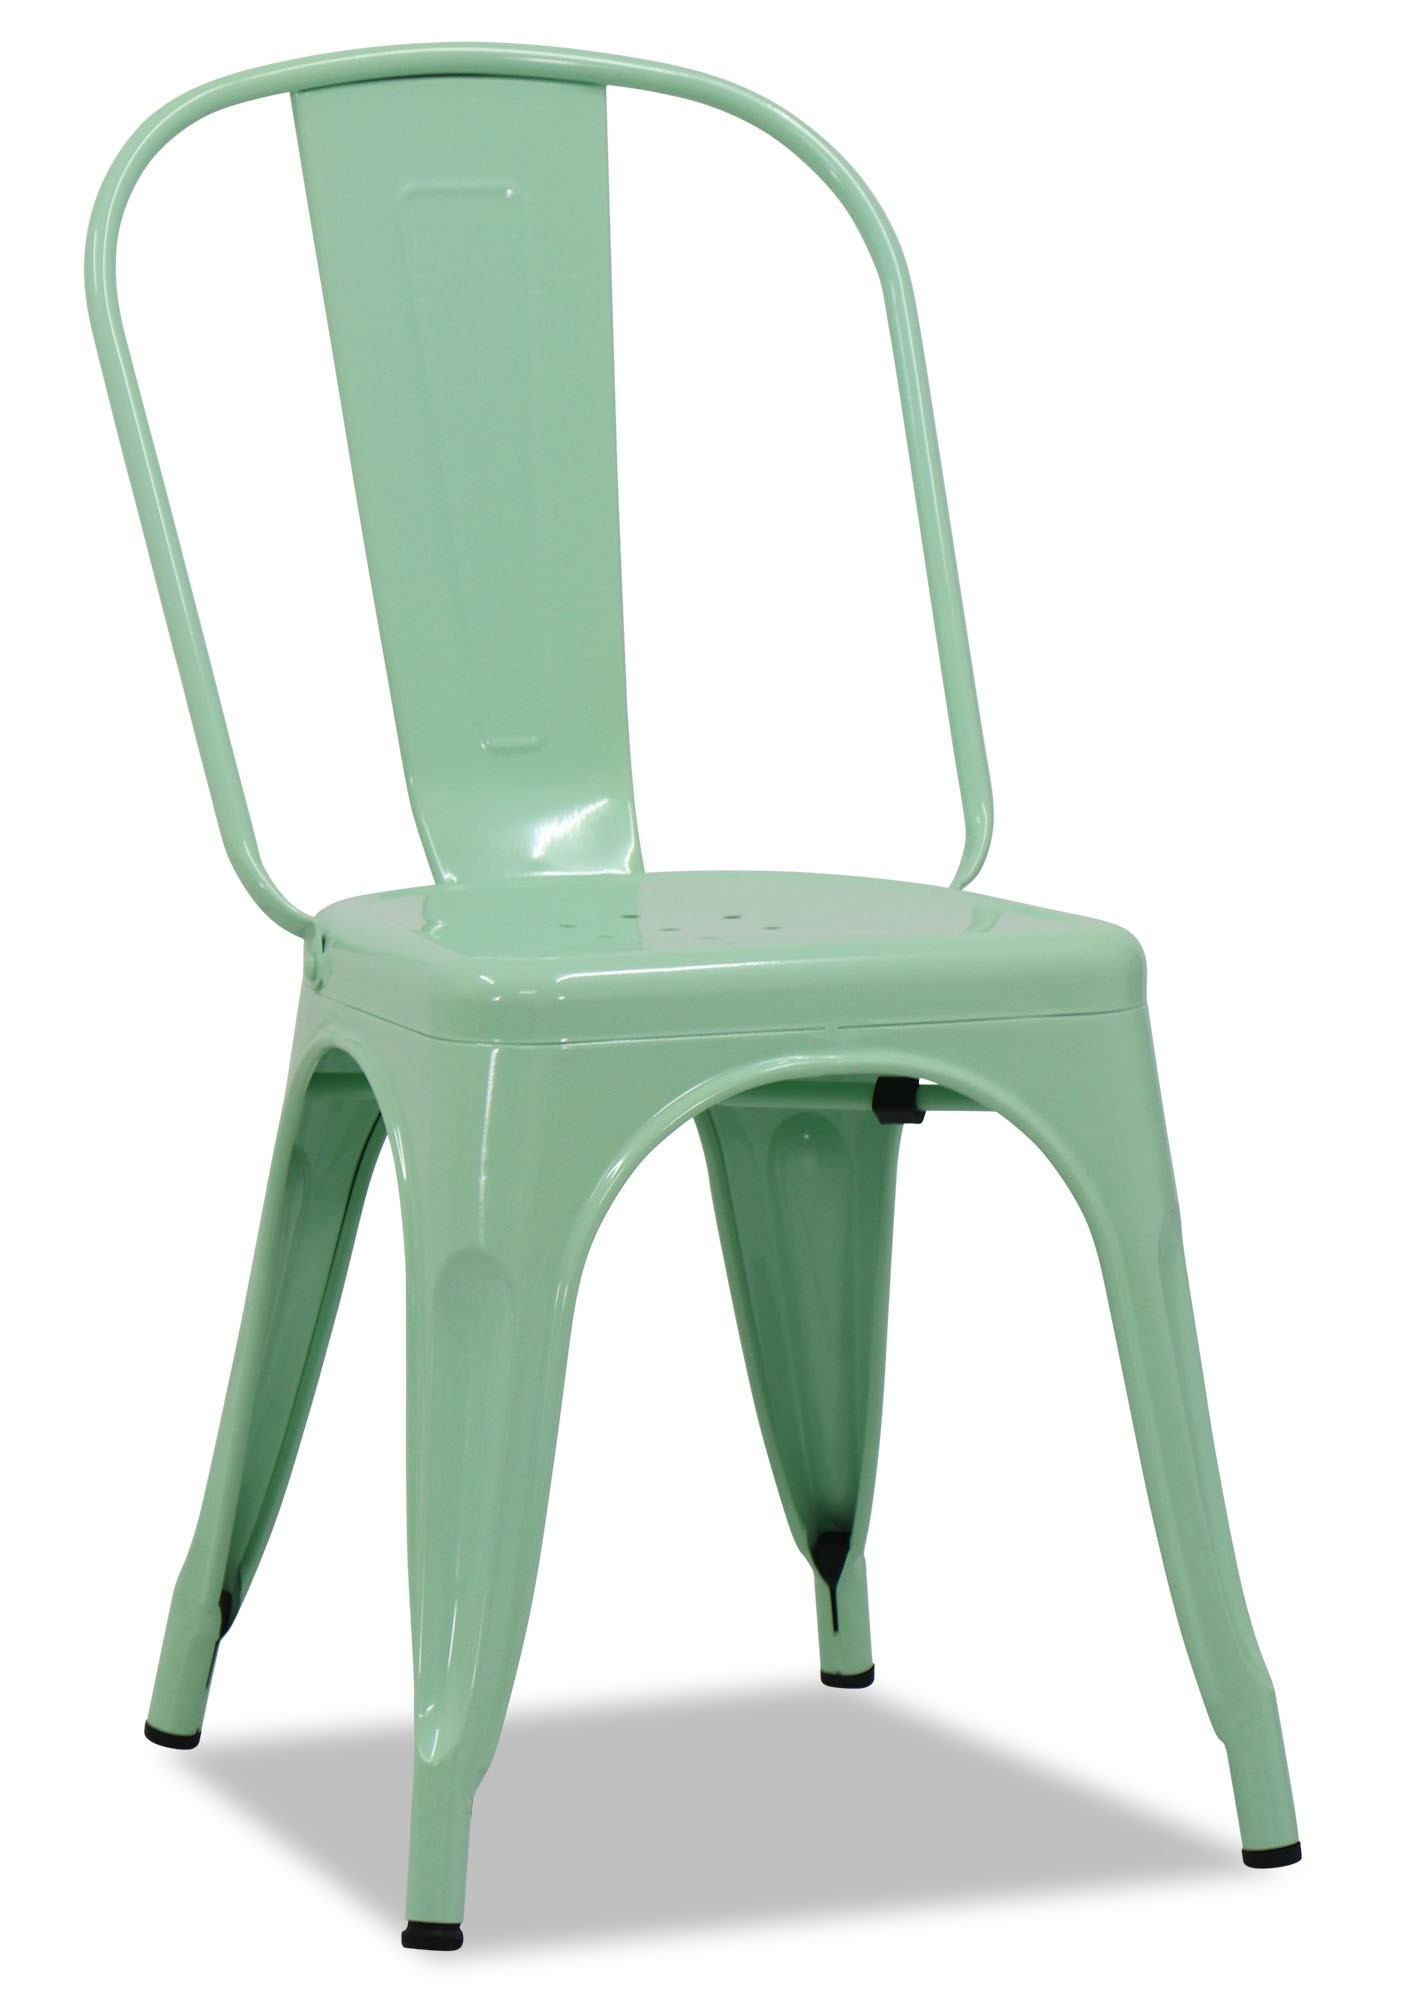 Charmant Retro Metal Chair Mint